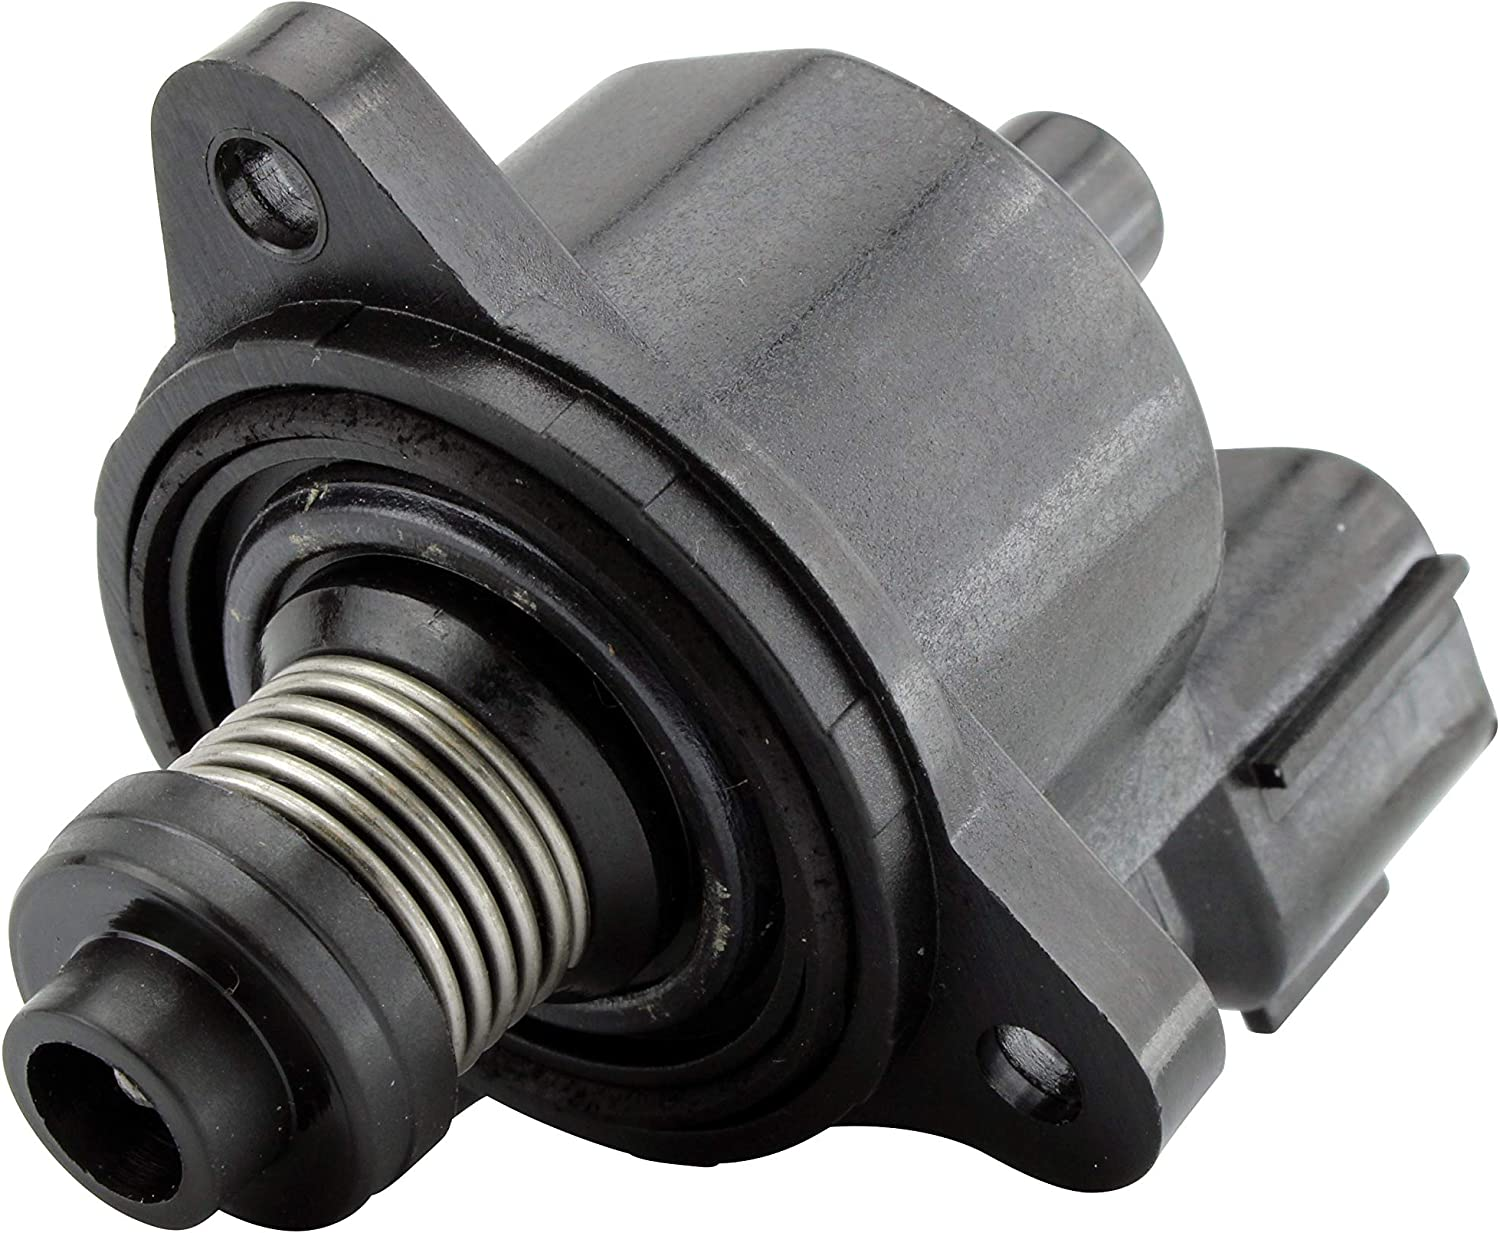 Valve for Polaris Ranger 500 2006-2009//500 EFI 2010-2013//800 2011-2017//800 XP 2012 Ranger Crew 500 2011-13//800 2011-14 RZR 4 800 // RZR 800 EFI//RZR 800 S 2011-2014 IAC Idle Air Control